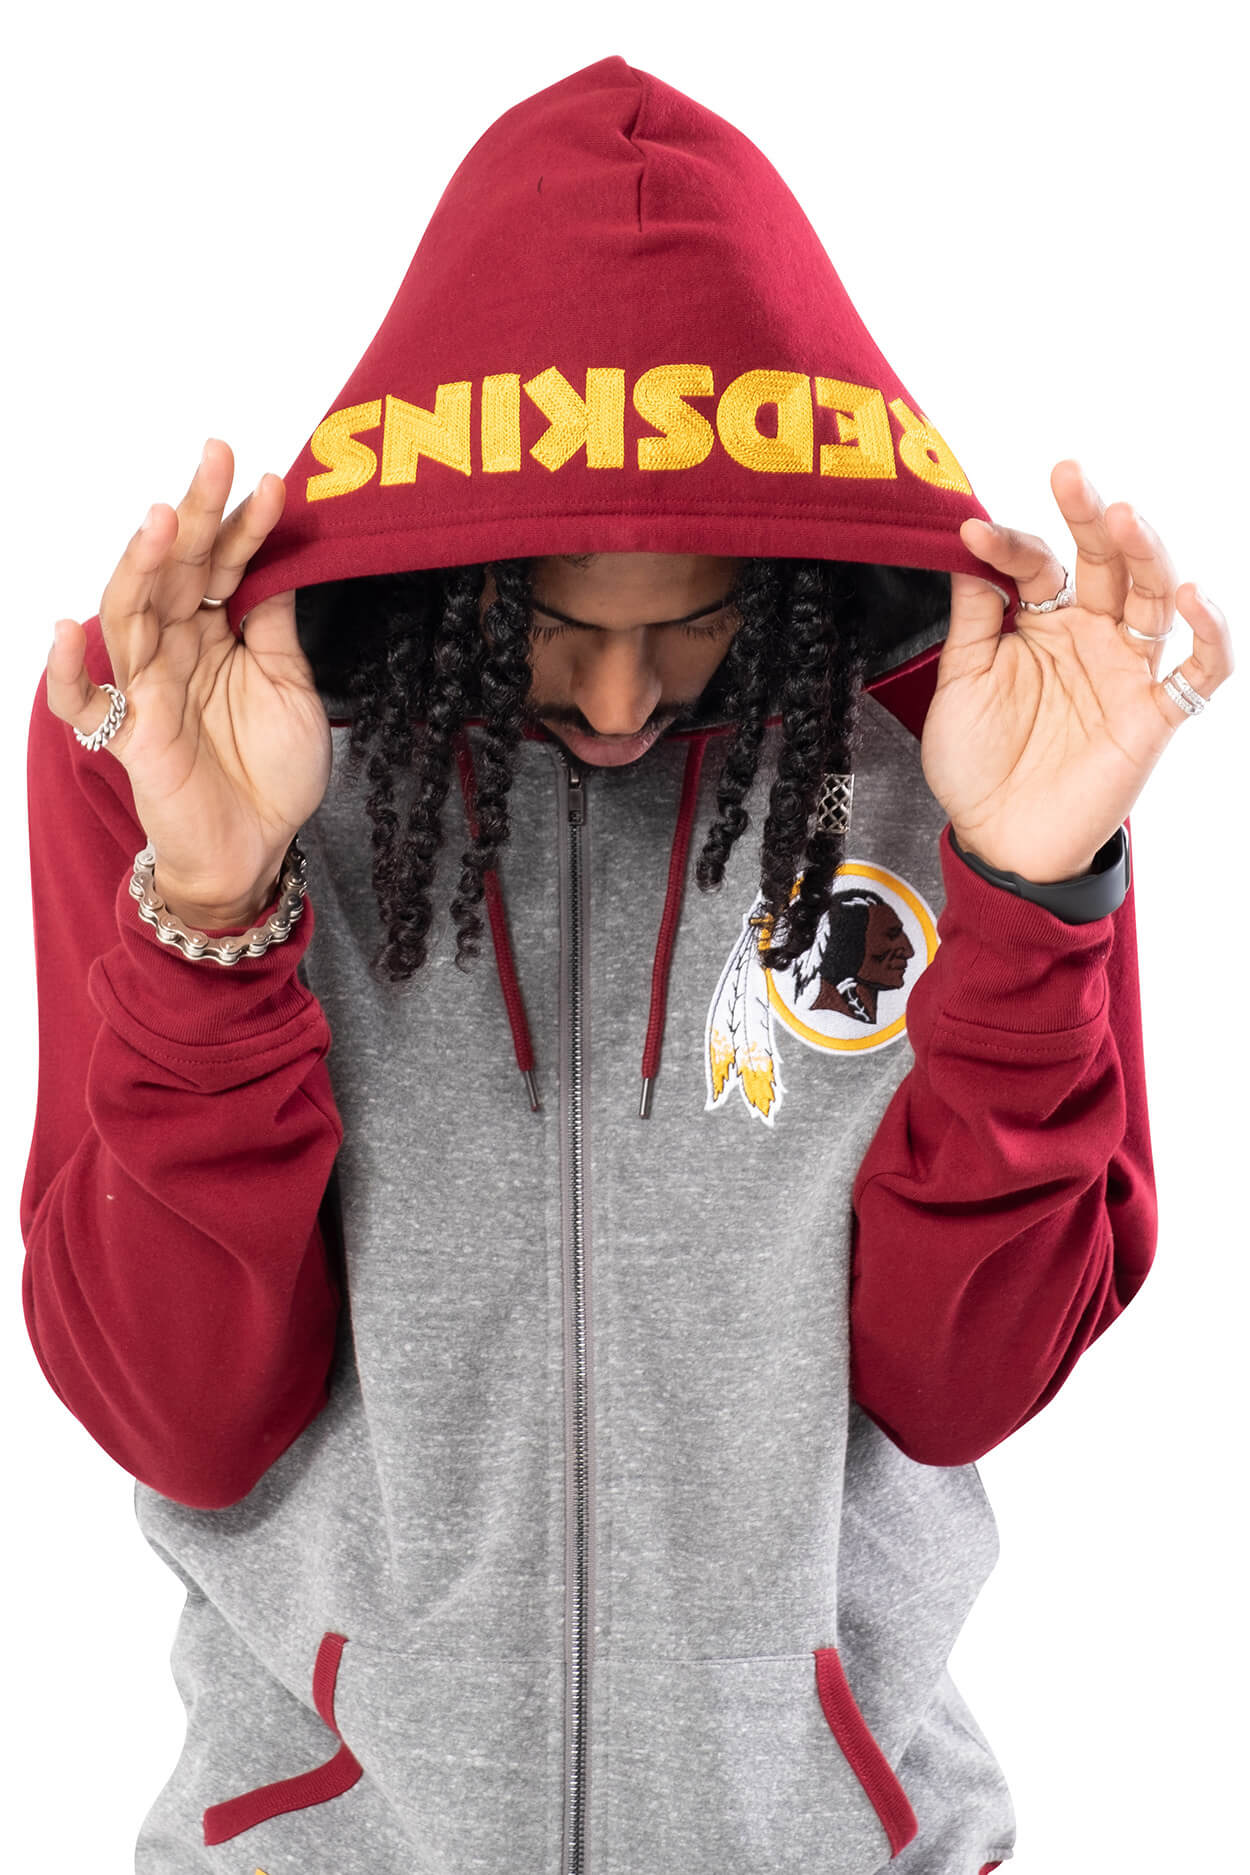 NFL Washington Redskins Men's Full Zip Hoodie|Washington Redskins